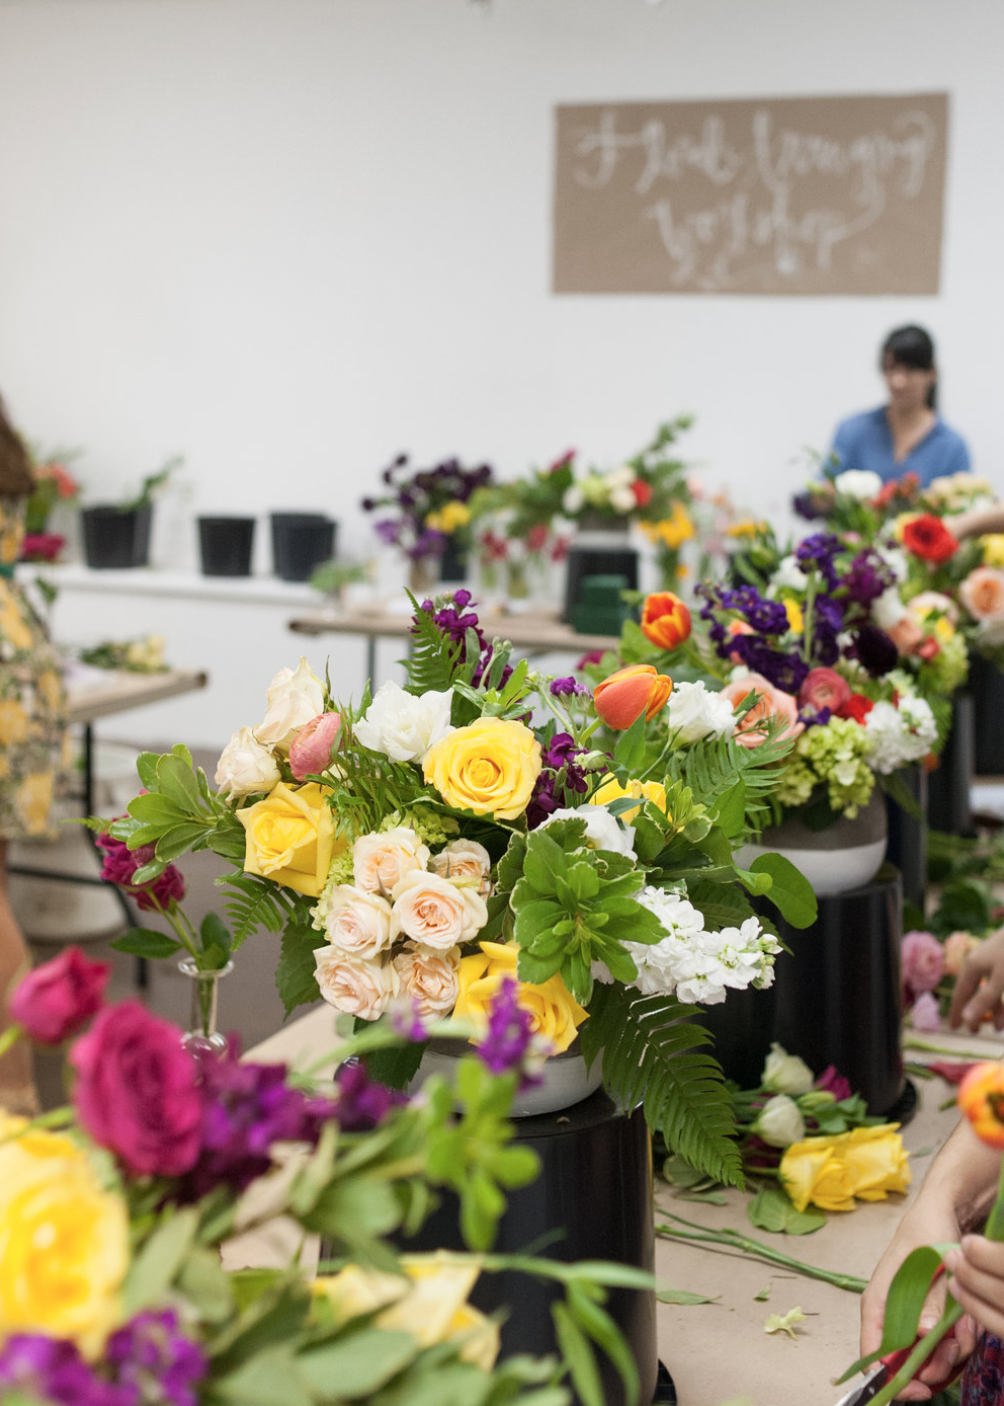 Maxit Flower Design's floral workshop in full swing. Maria teaching the attendees how to prep flowers.